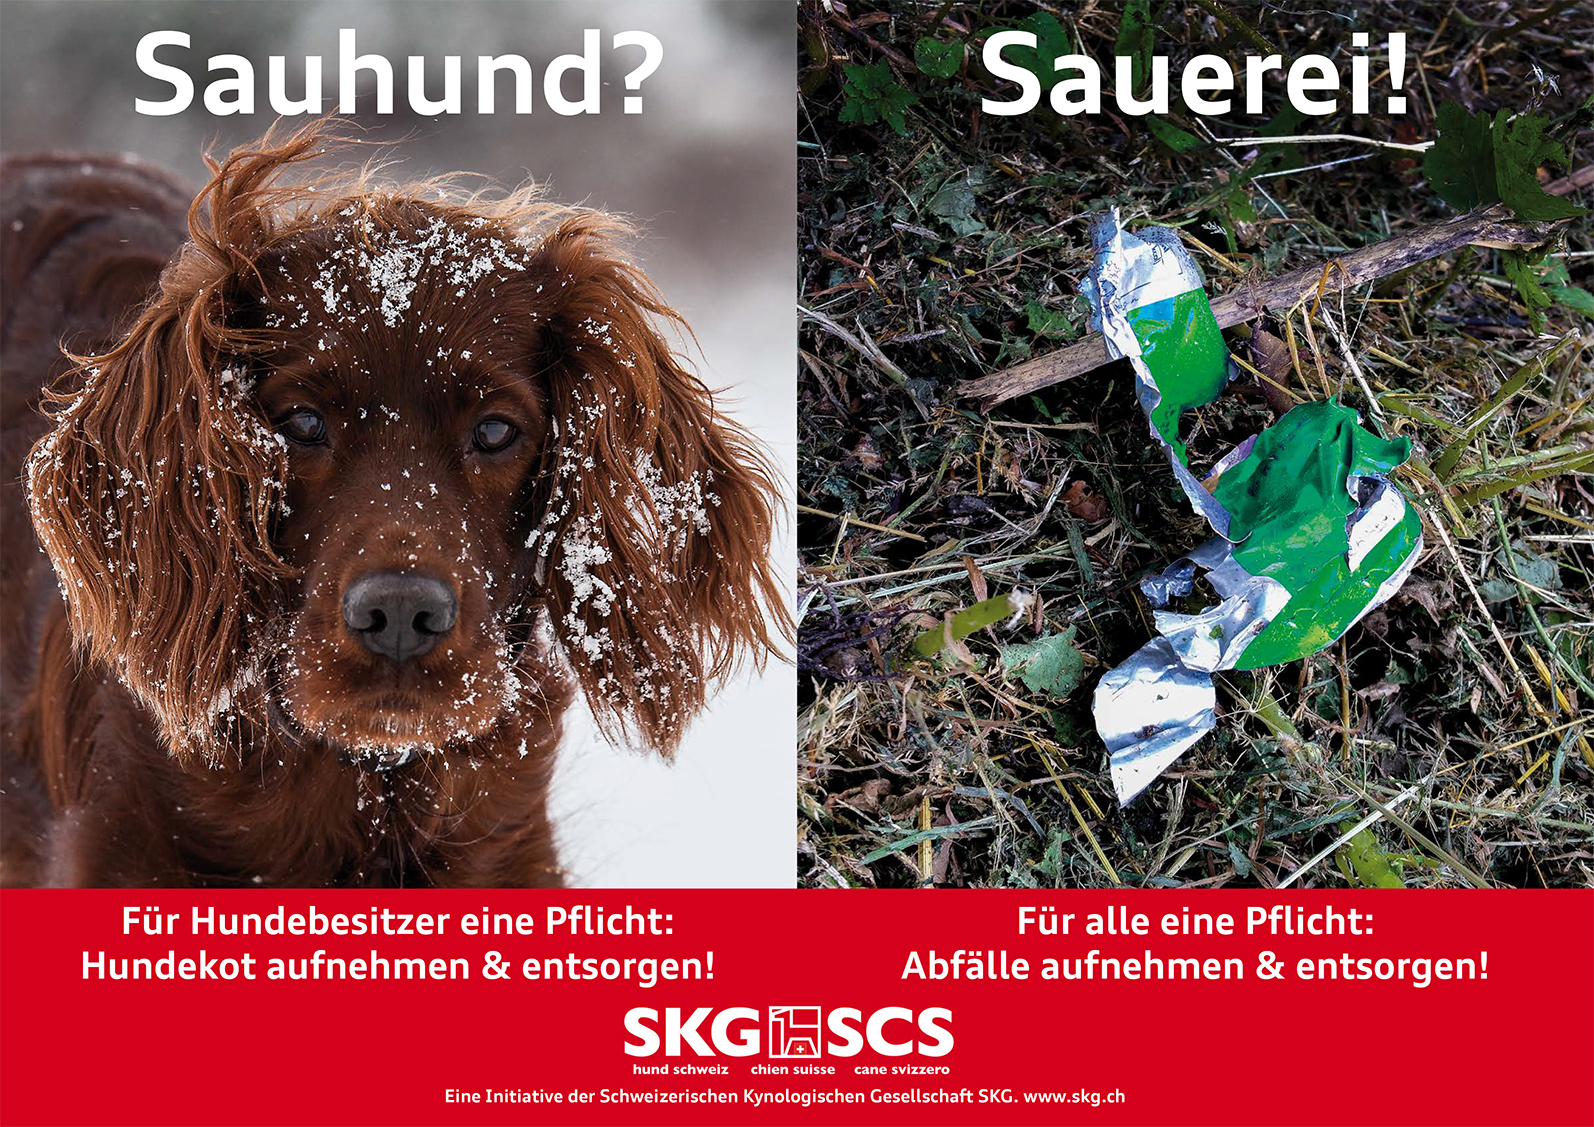 SKG - nationale Kampagne